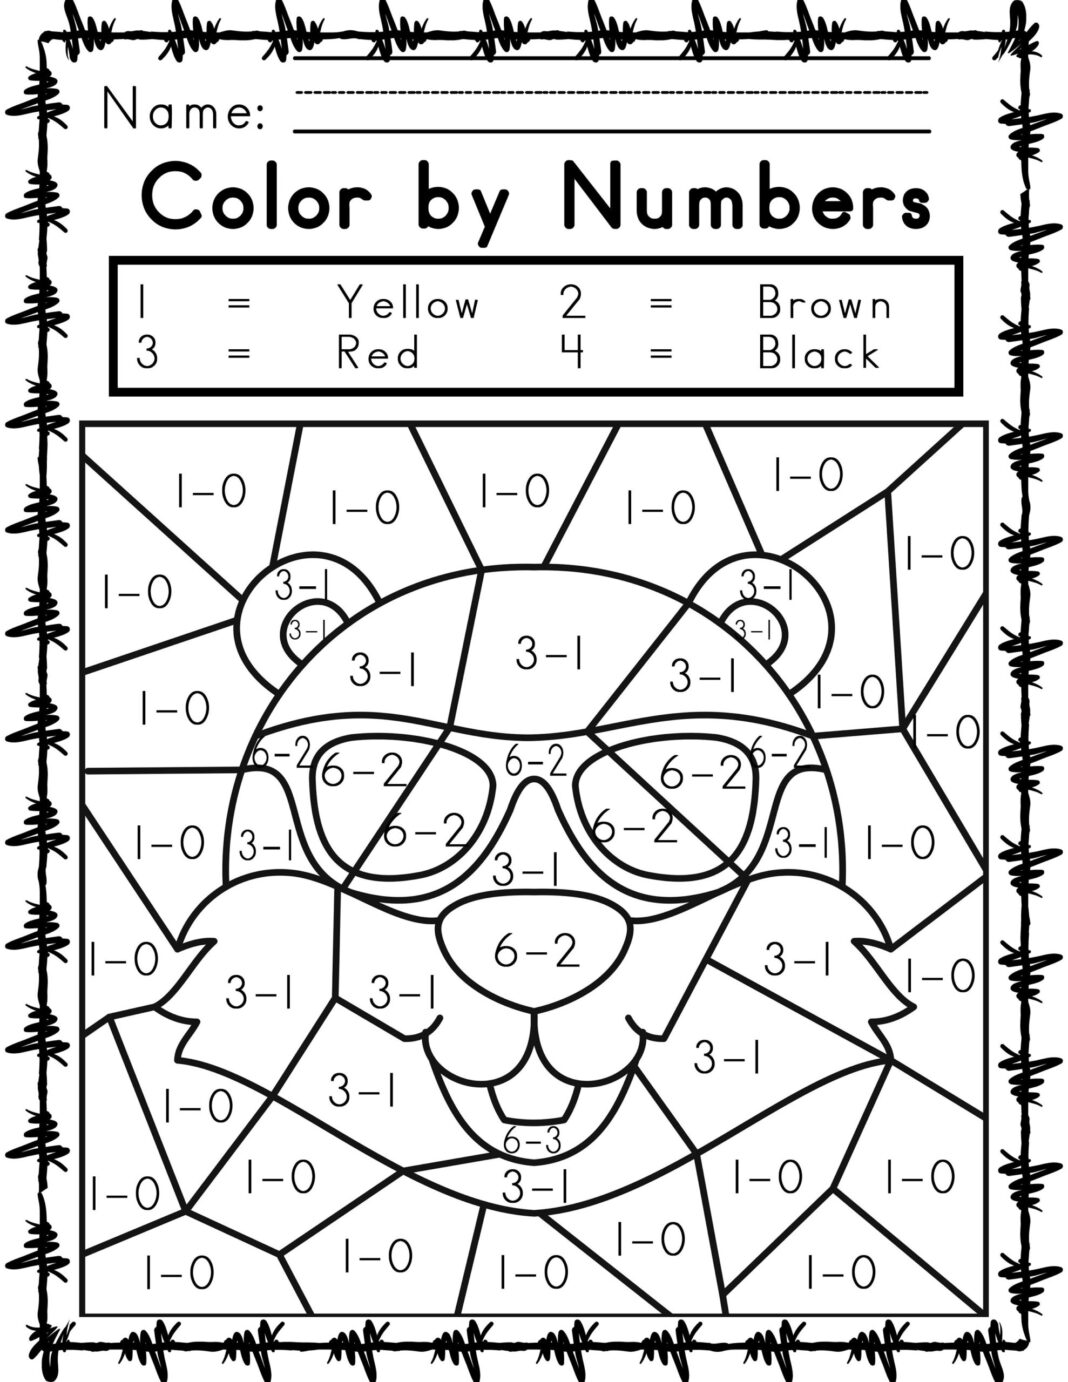 8th grade math coloring worksheets 8th grade math number system vocabulary coloring worksheet worksheets coloring grade 8th math